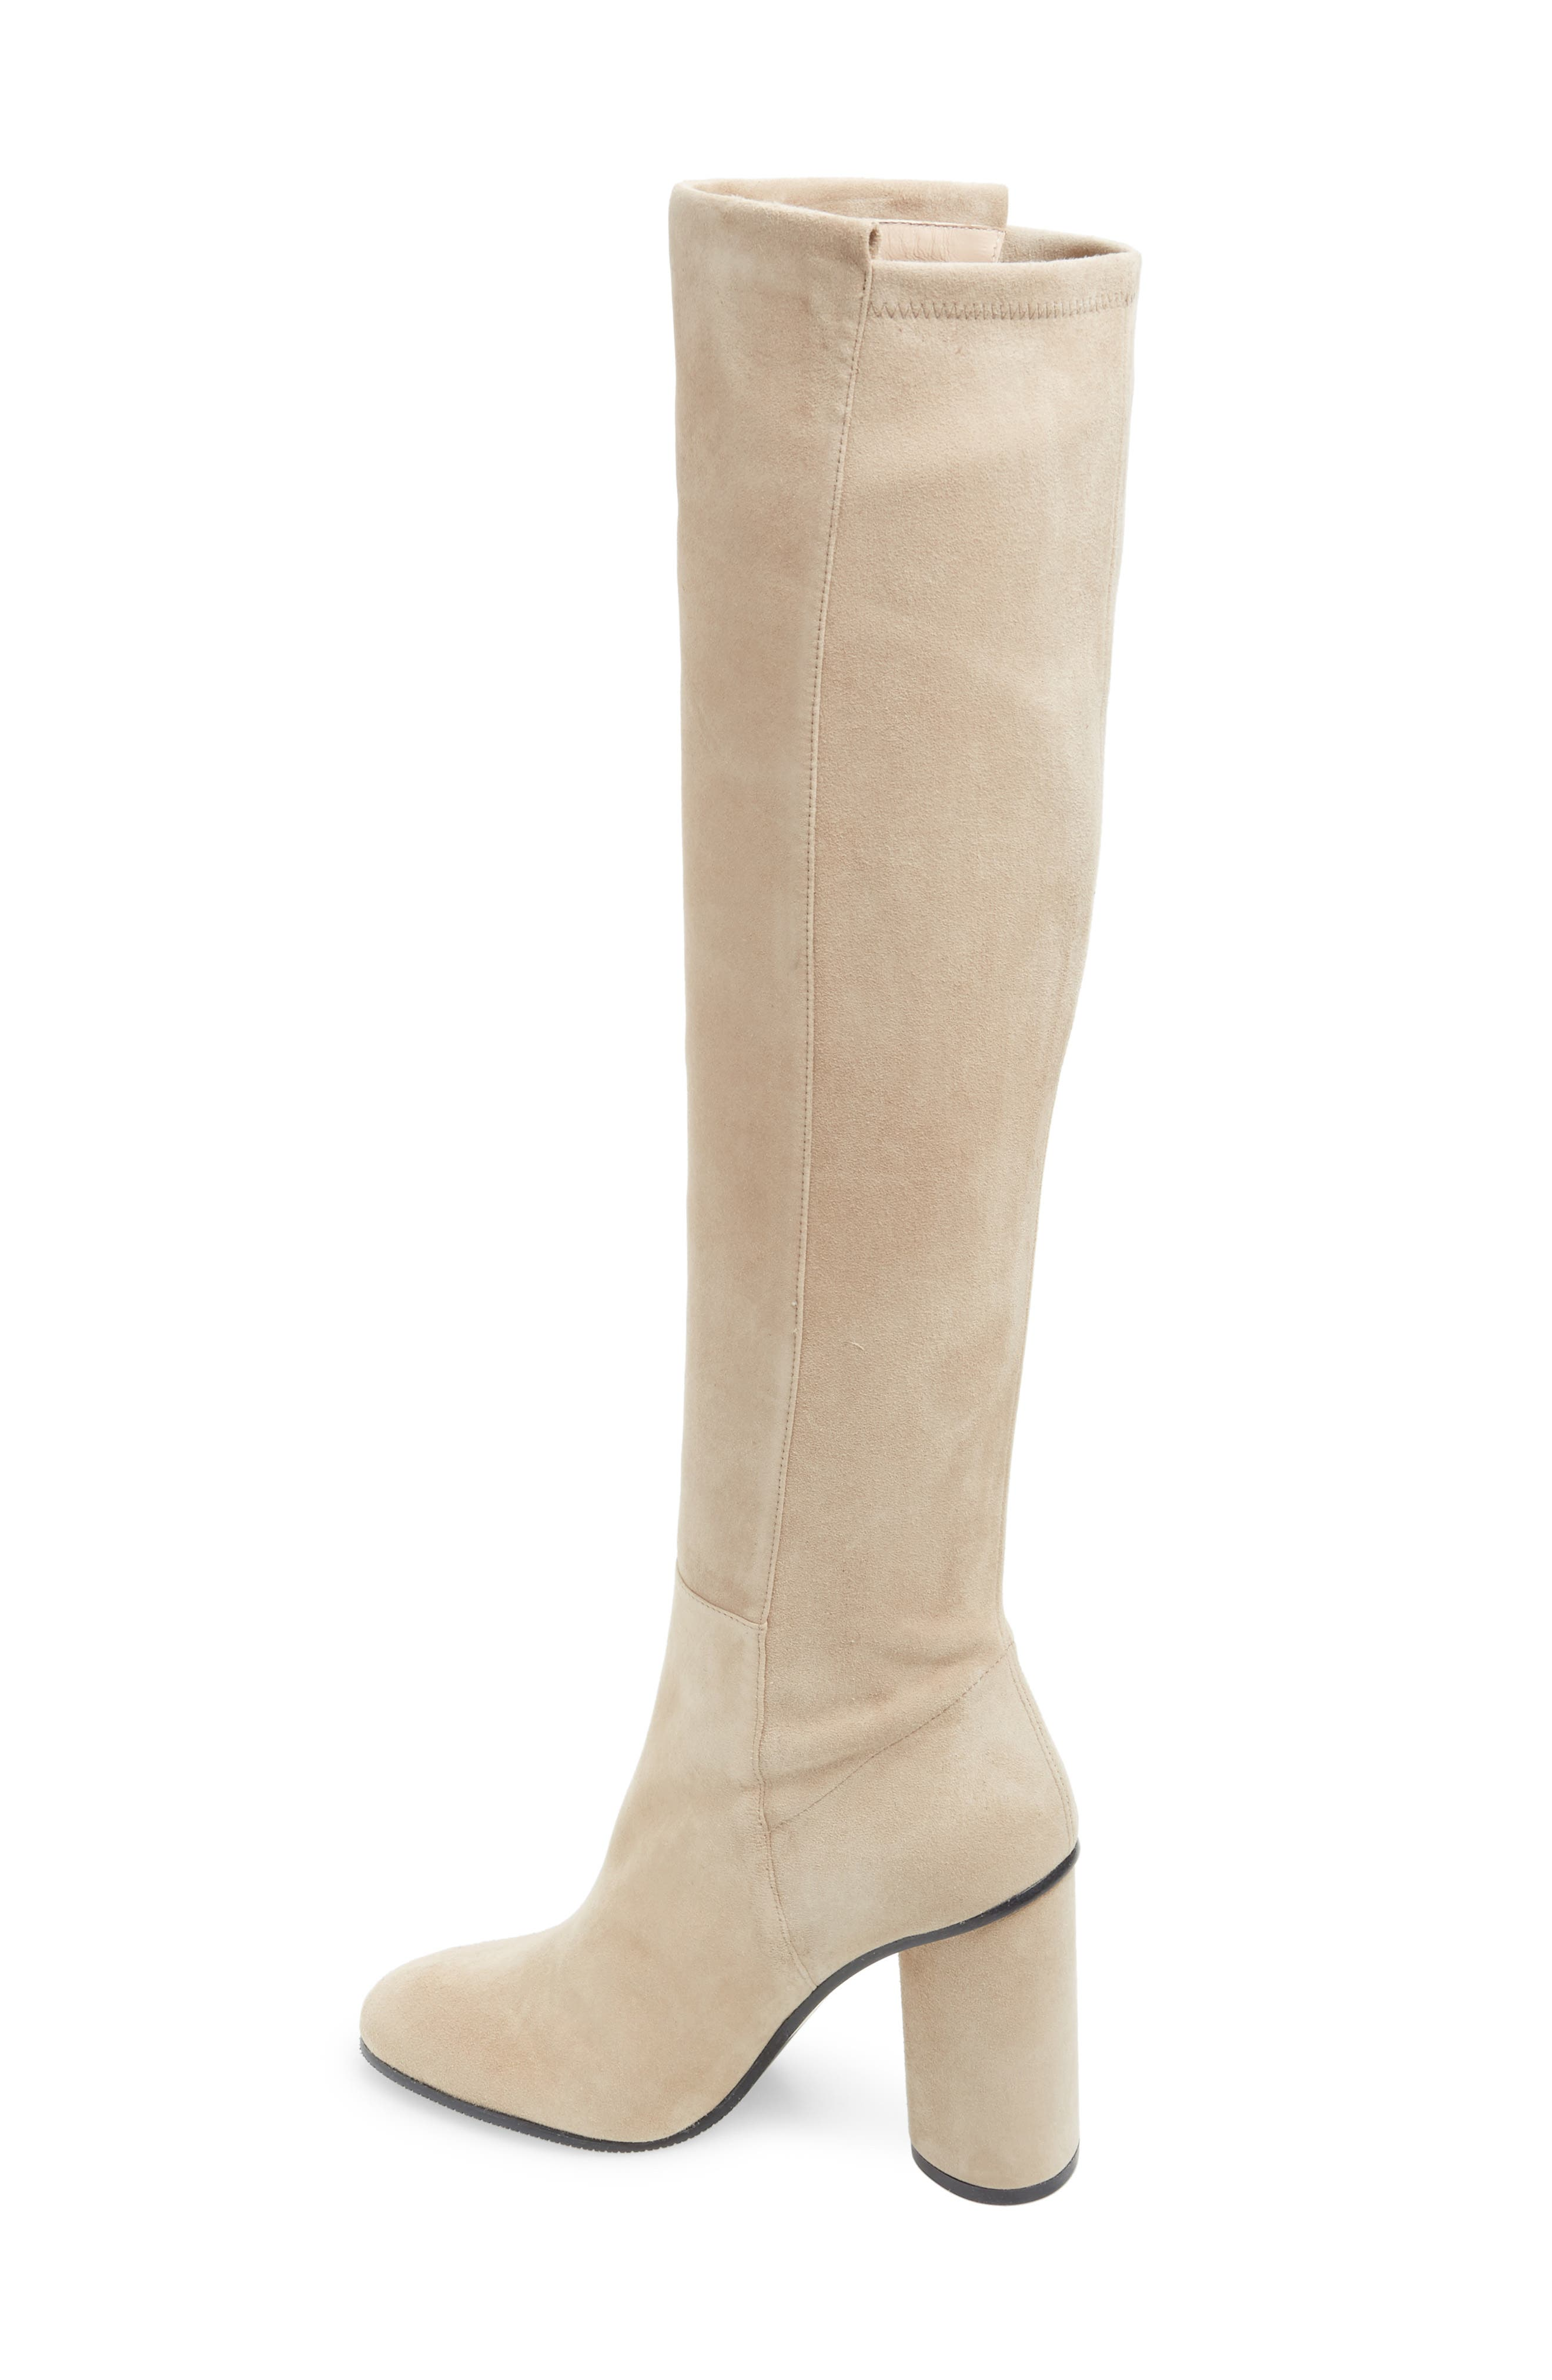 Eloise Over the Knee Boot,                             Alternate thumbnail 2, color,                             BROWNSTONE SUEDE